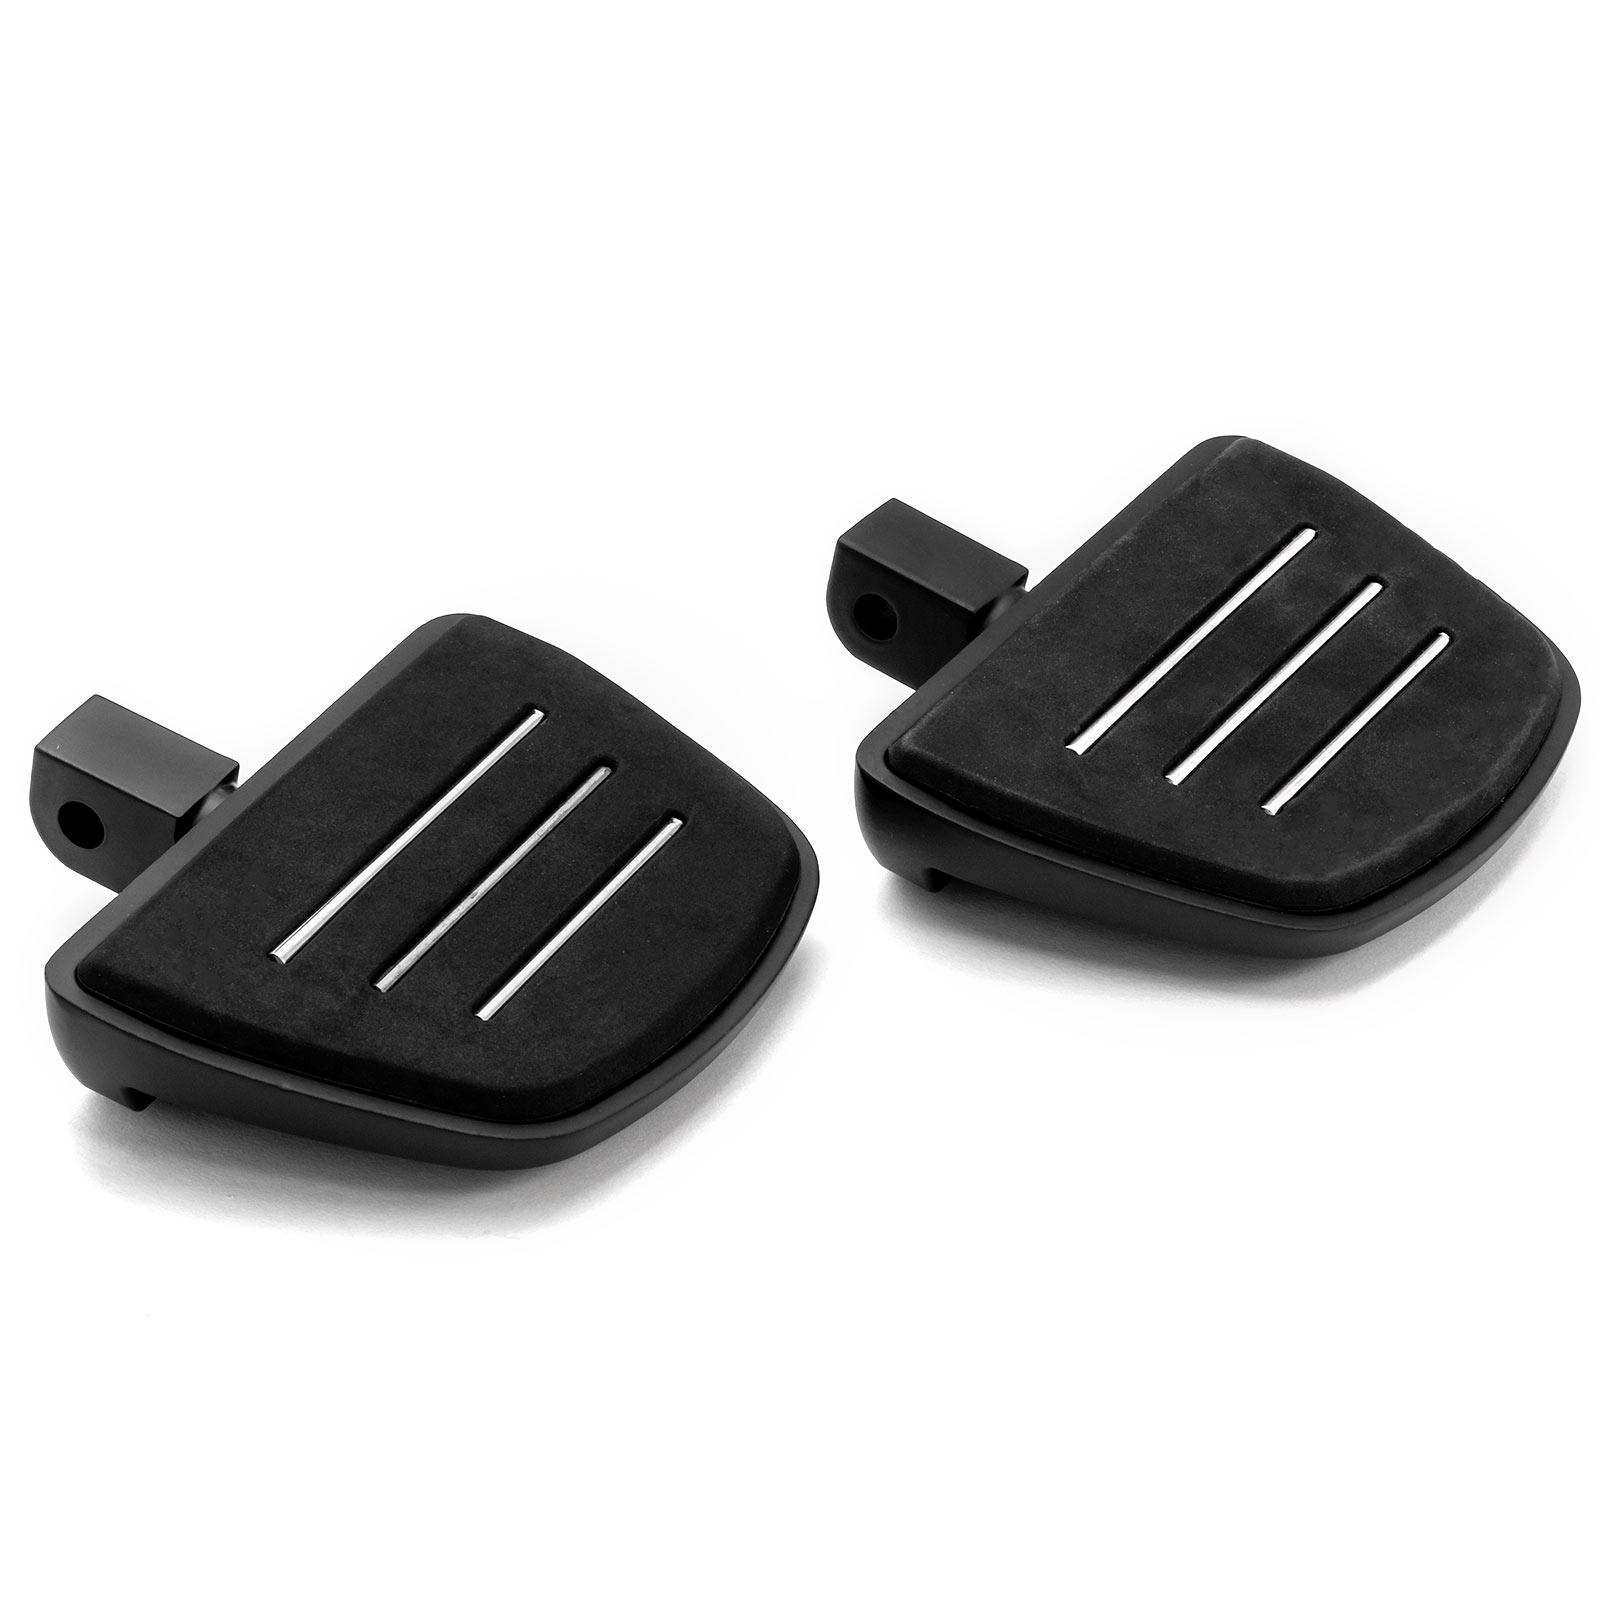 Krator Black Motorcycle Foot Pegs Footrests Left /& Right For Suzuki SV650 2017 Rear